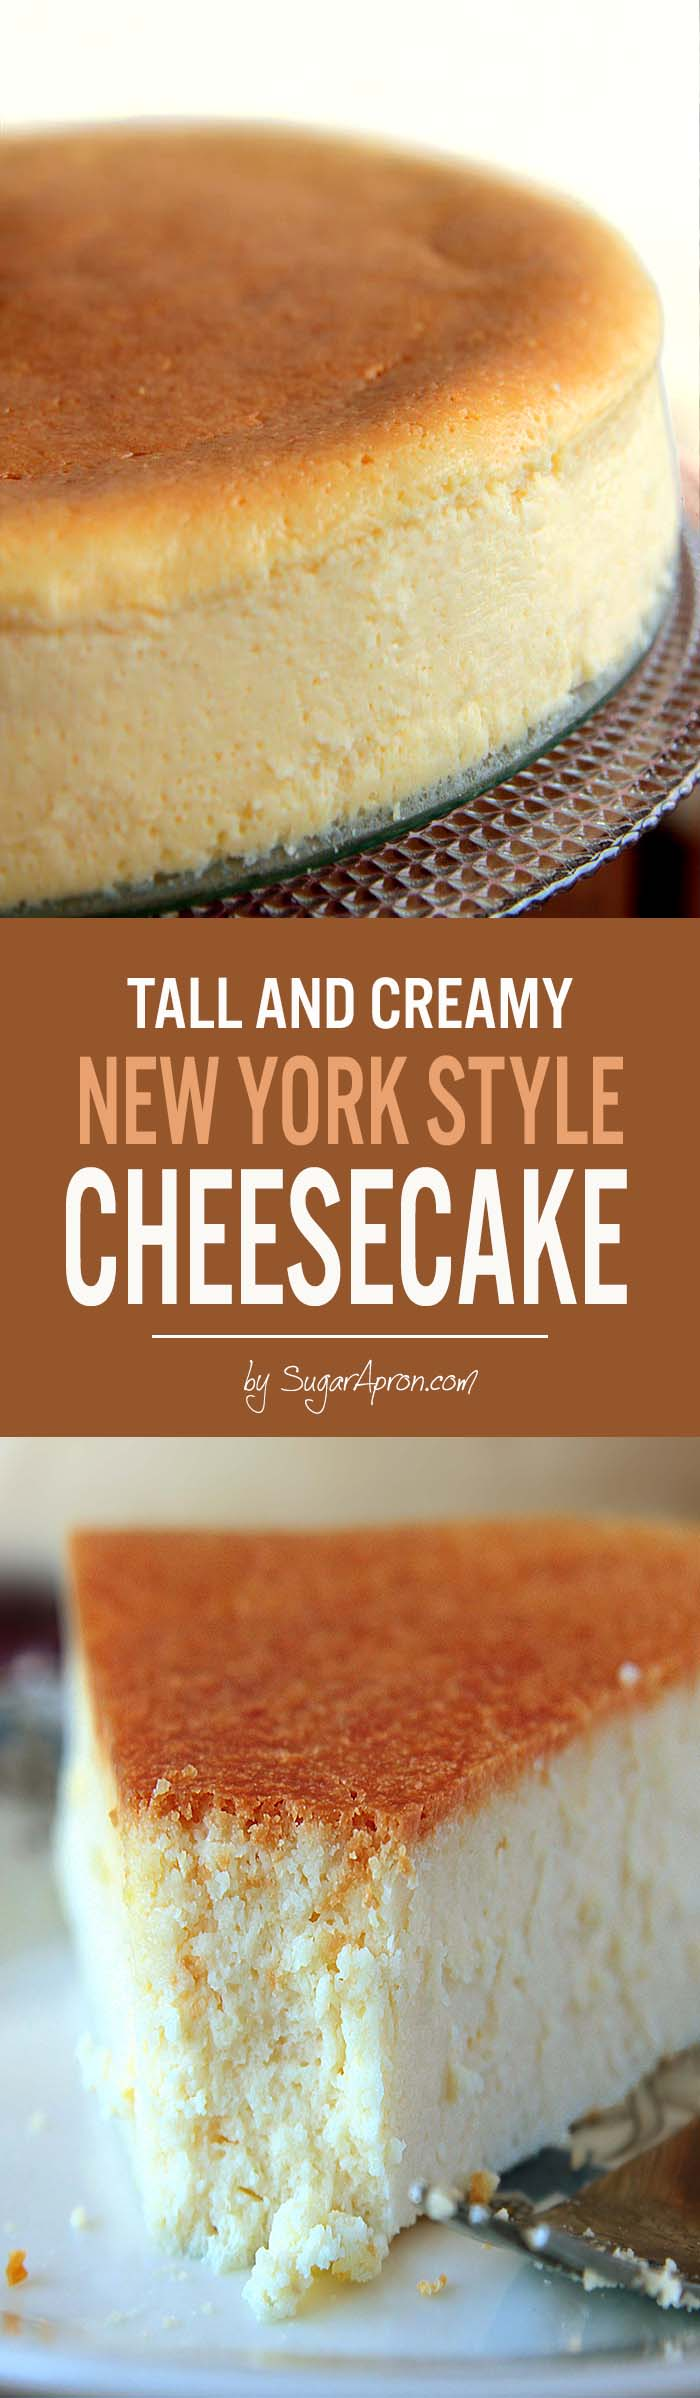 New York Style Cheesecake – Tall, creamy, thick, smooth and it slices beautifully. And more as you may have noticed there is No CRACKS....Absolutely Perfect !!